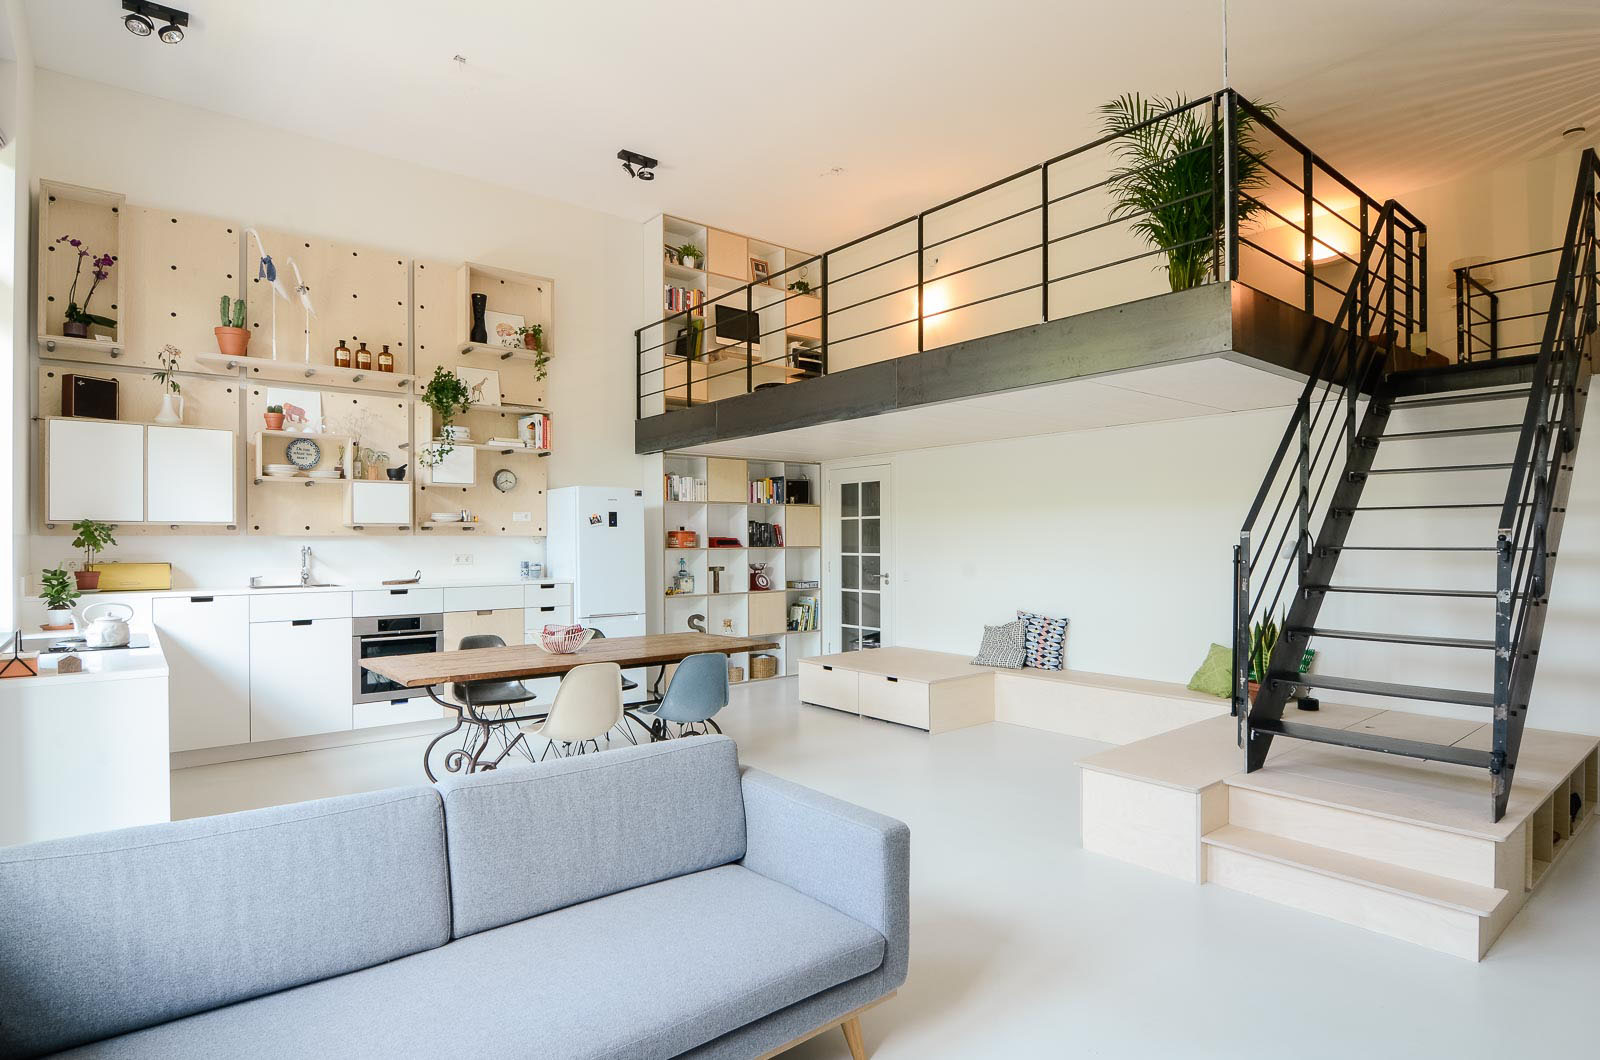 Old school building converted into modern family loft for Living in a model apartment